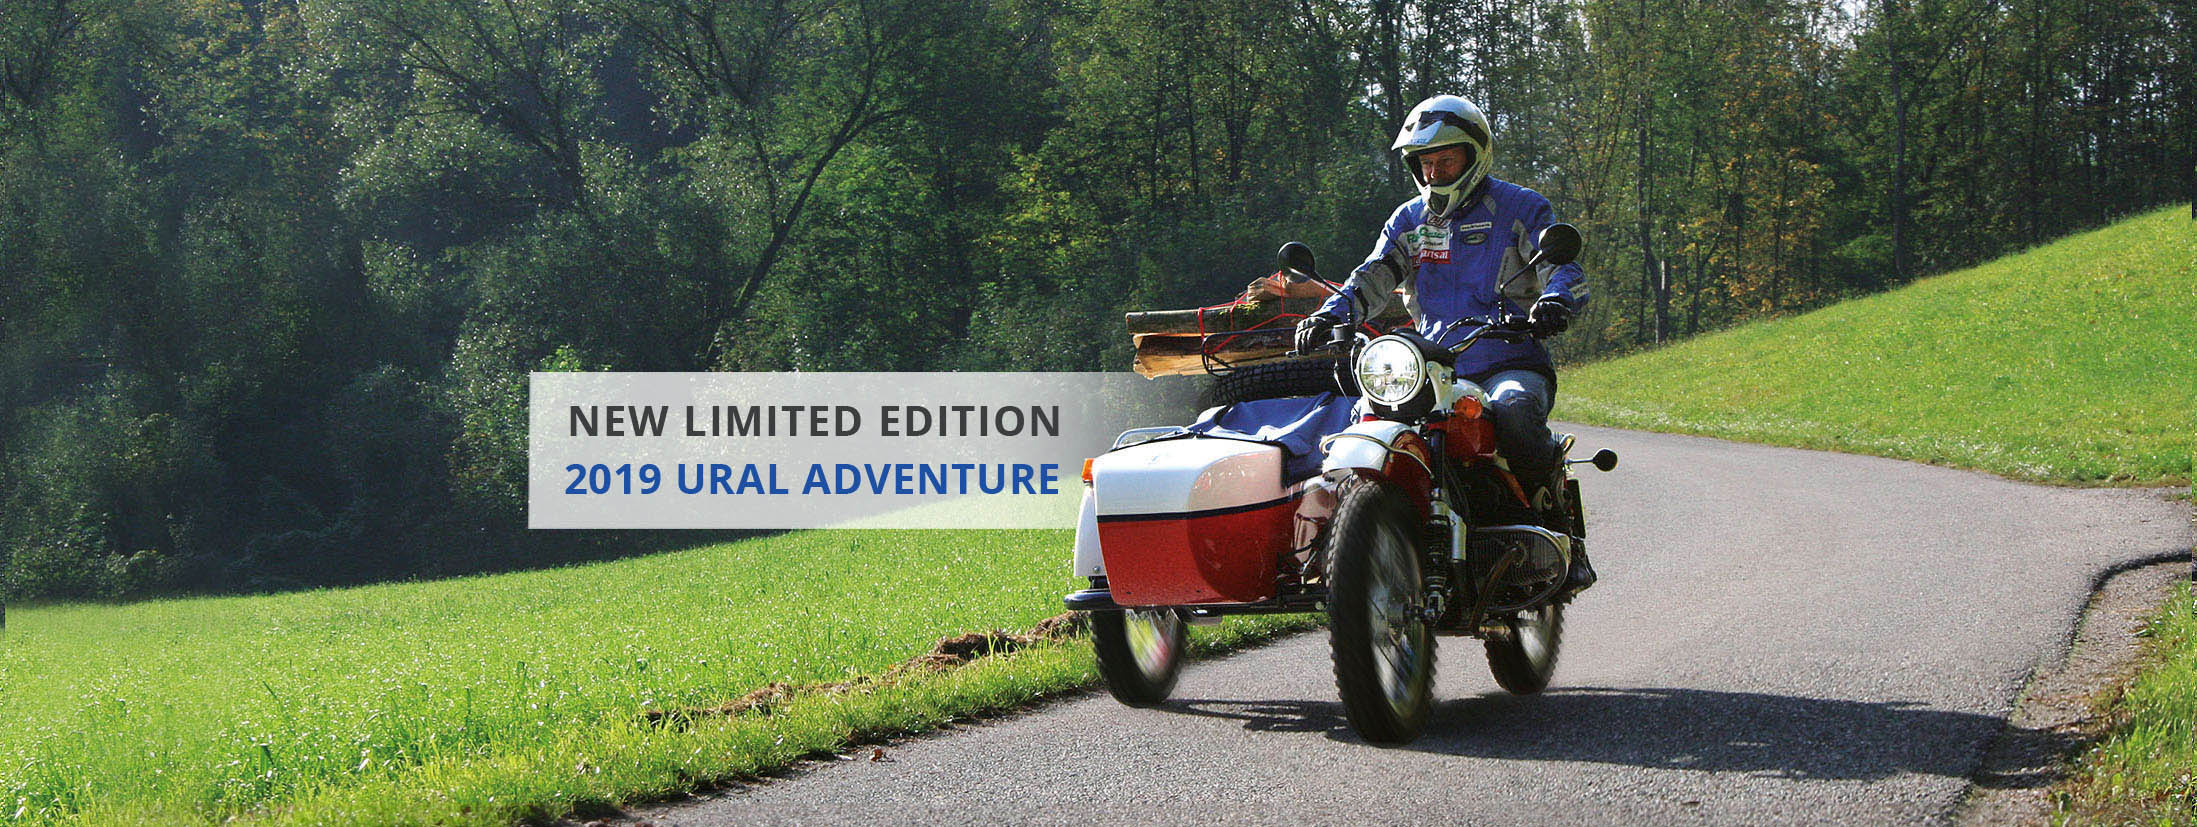 Ural New Adventure